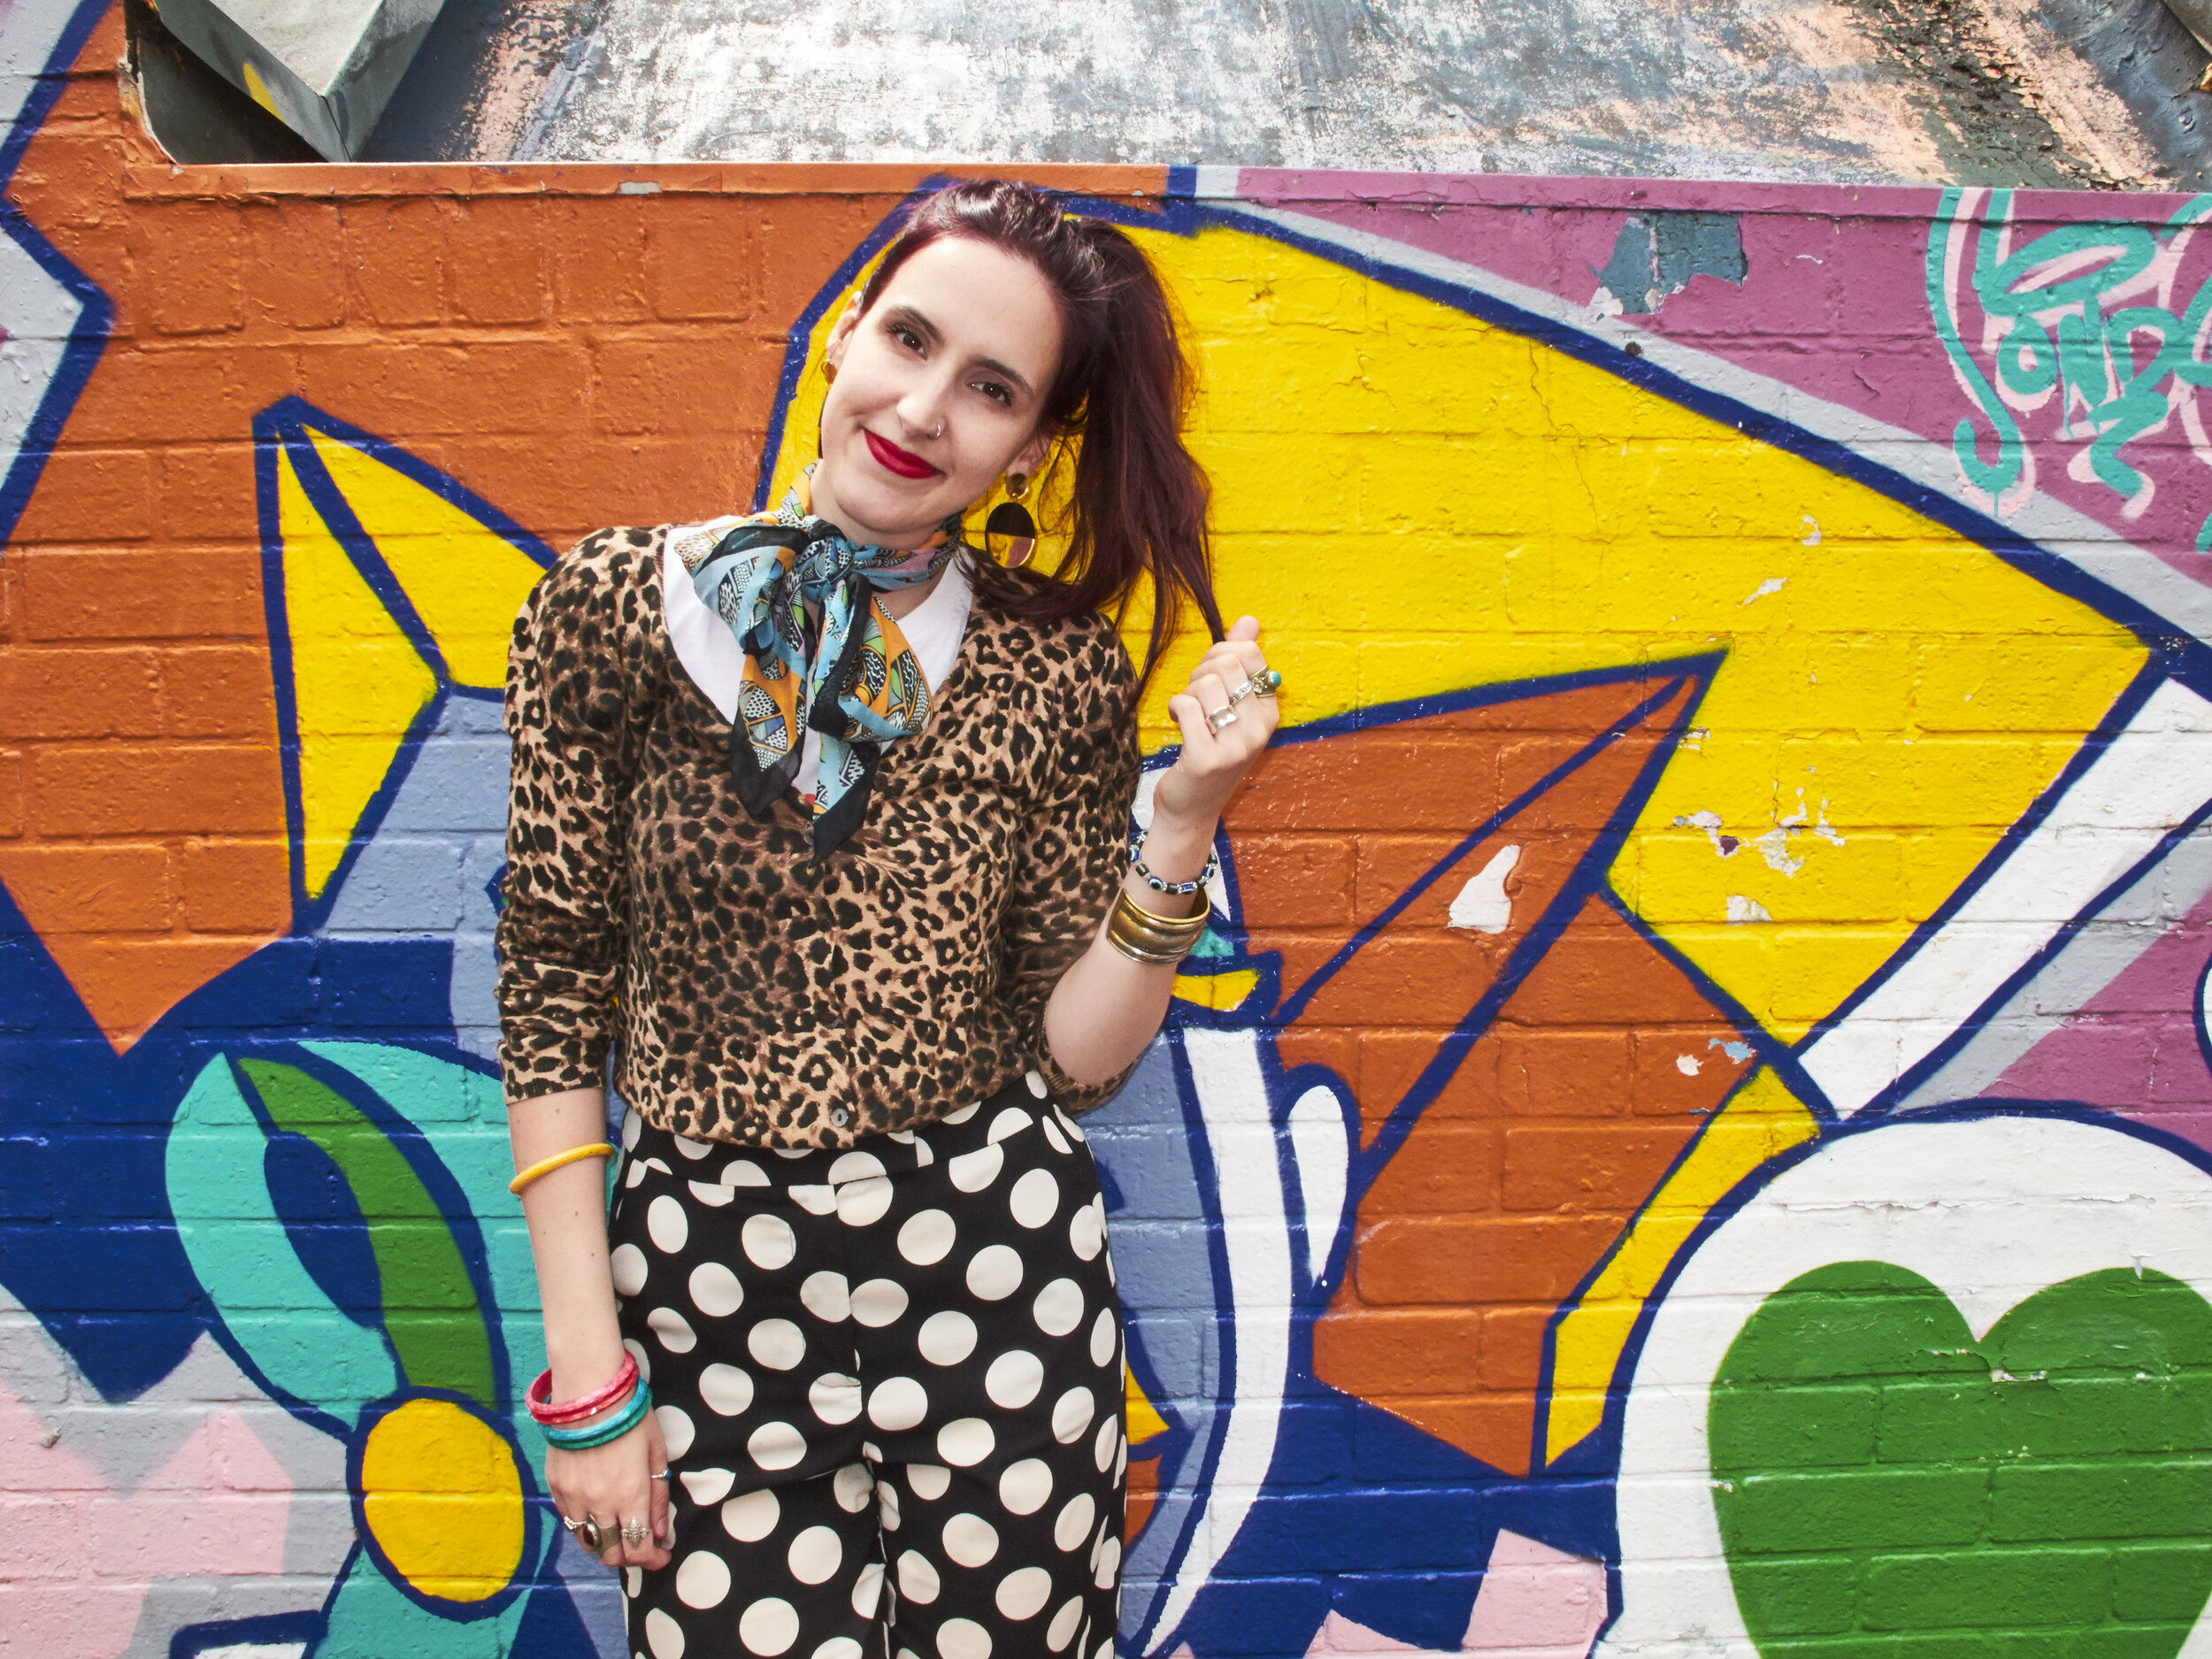 SOPHIE BENSON  Sophie is a freelance writer, stylist and fashion lecturer. She works with a focus on sustainable fashion and covers the topic for publications including The Guardian, Refinery29, Dazed and Grazia.  Image by Kayti Peschke